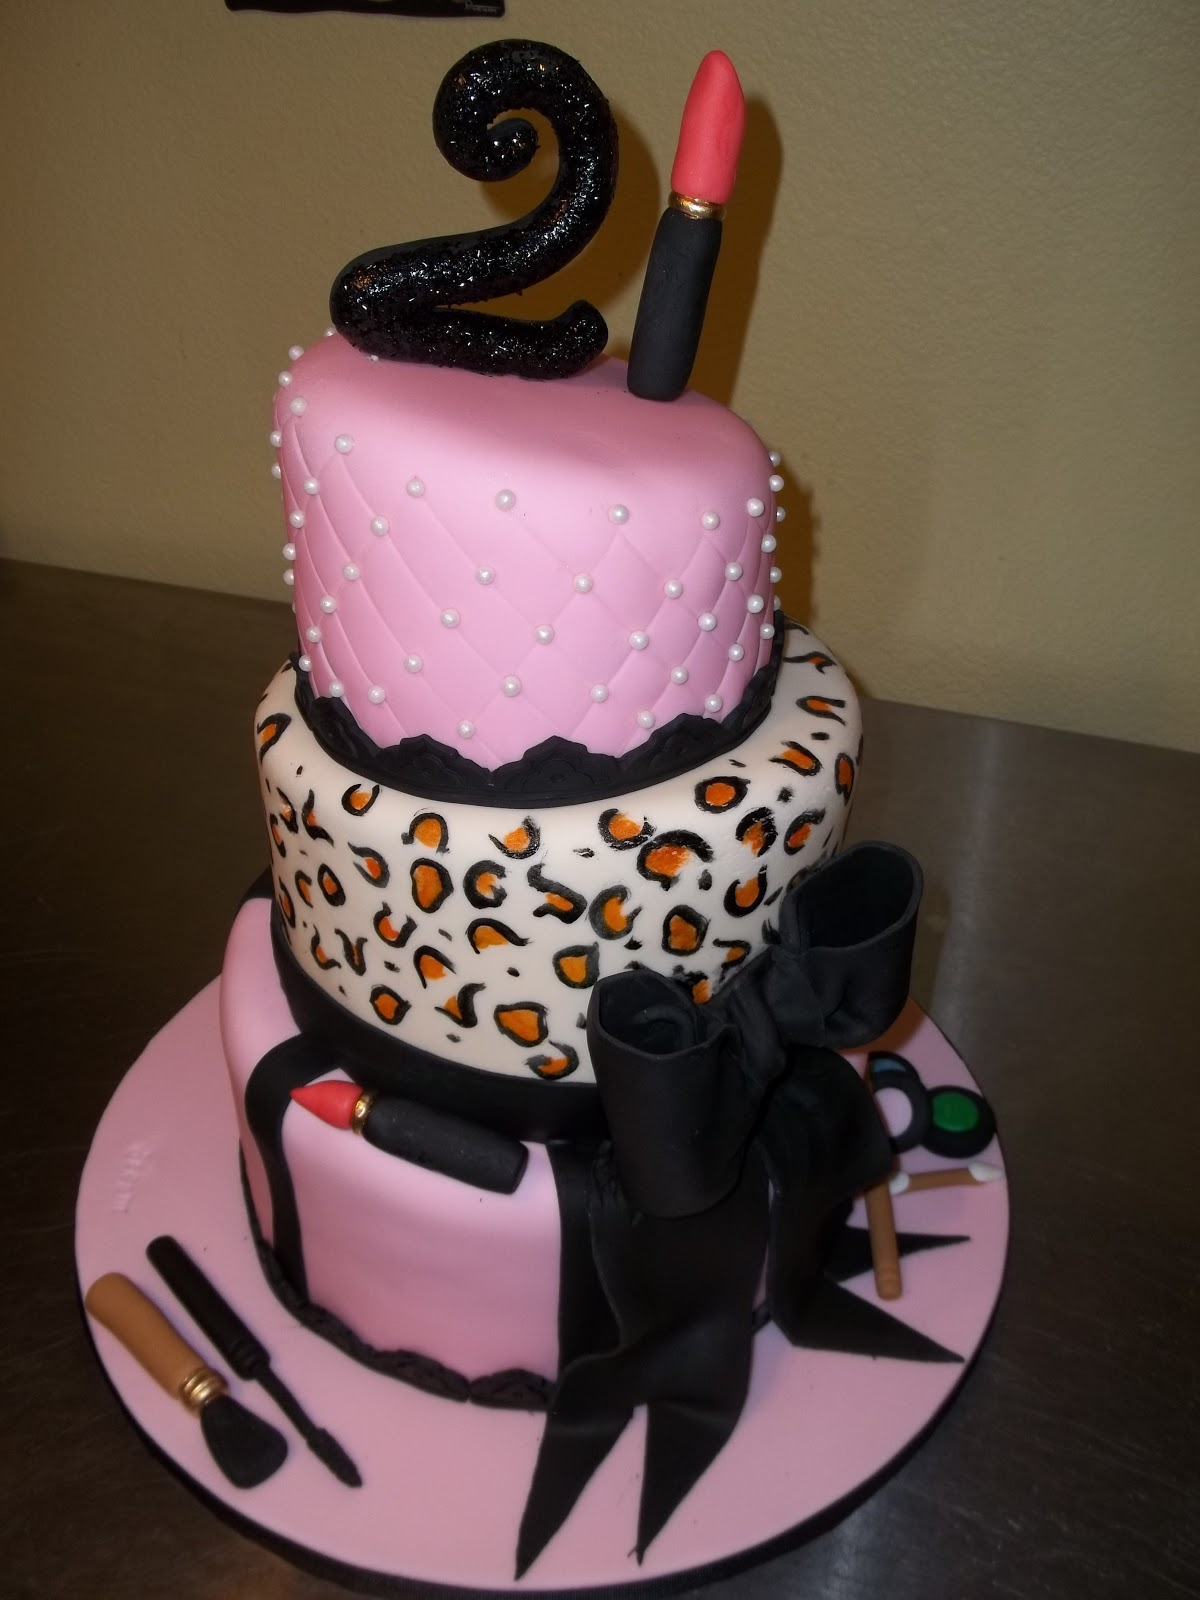 The Birthday Girl Wanted A Tiered Makeup Cake With Big Bow